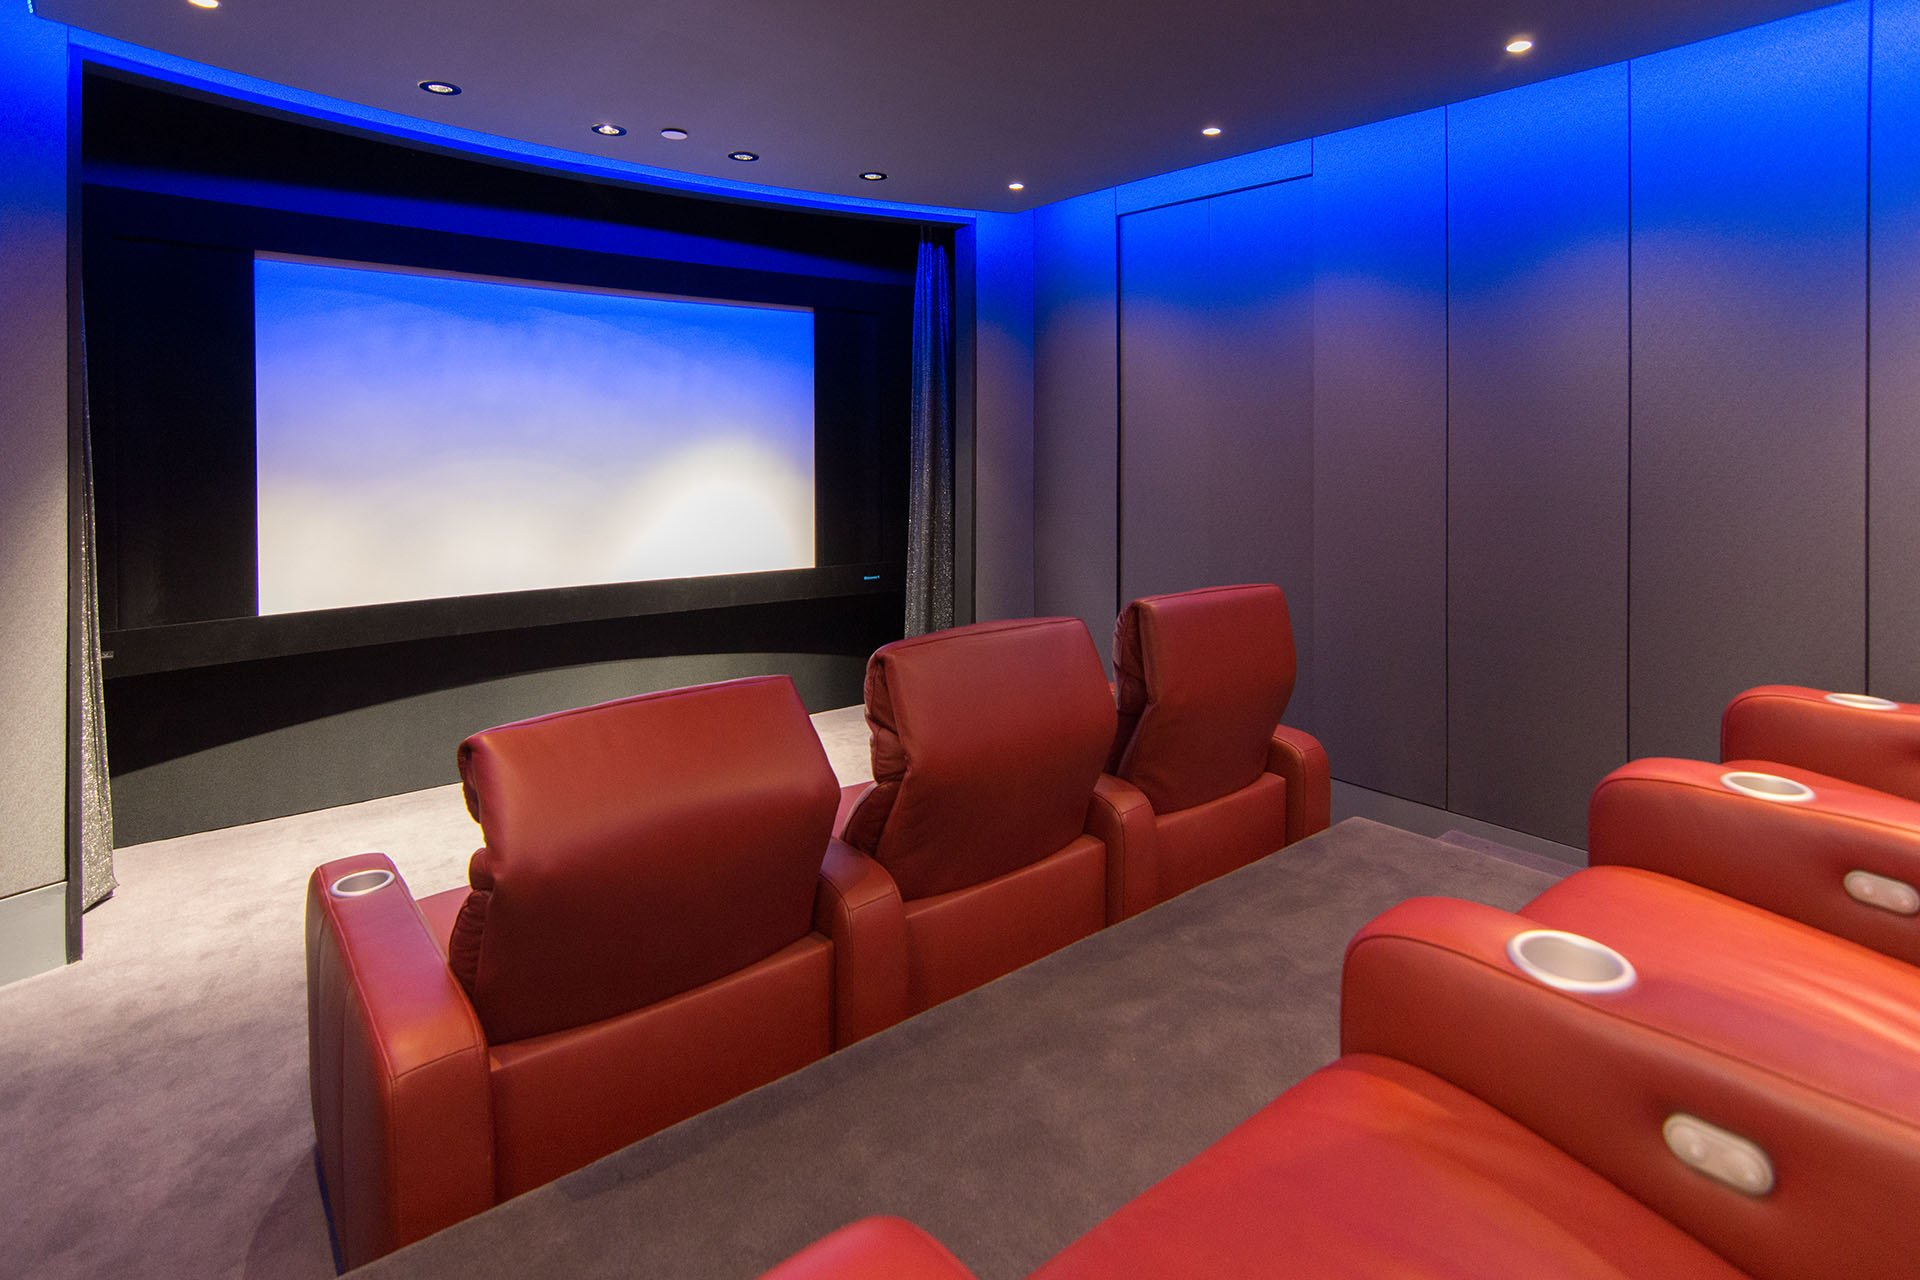 The Roxy 2.0 Theater Features A 120 Inch (diagonal) Stewart Filmscreen  Cinecurve